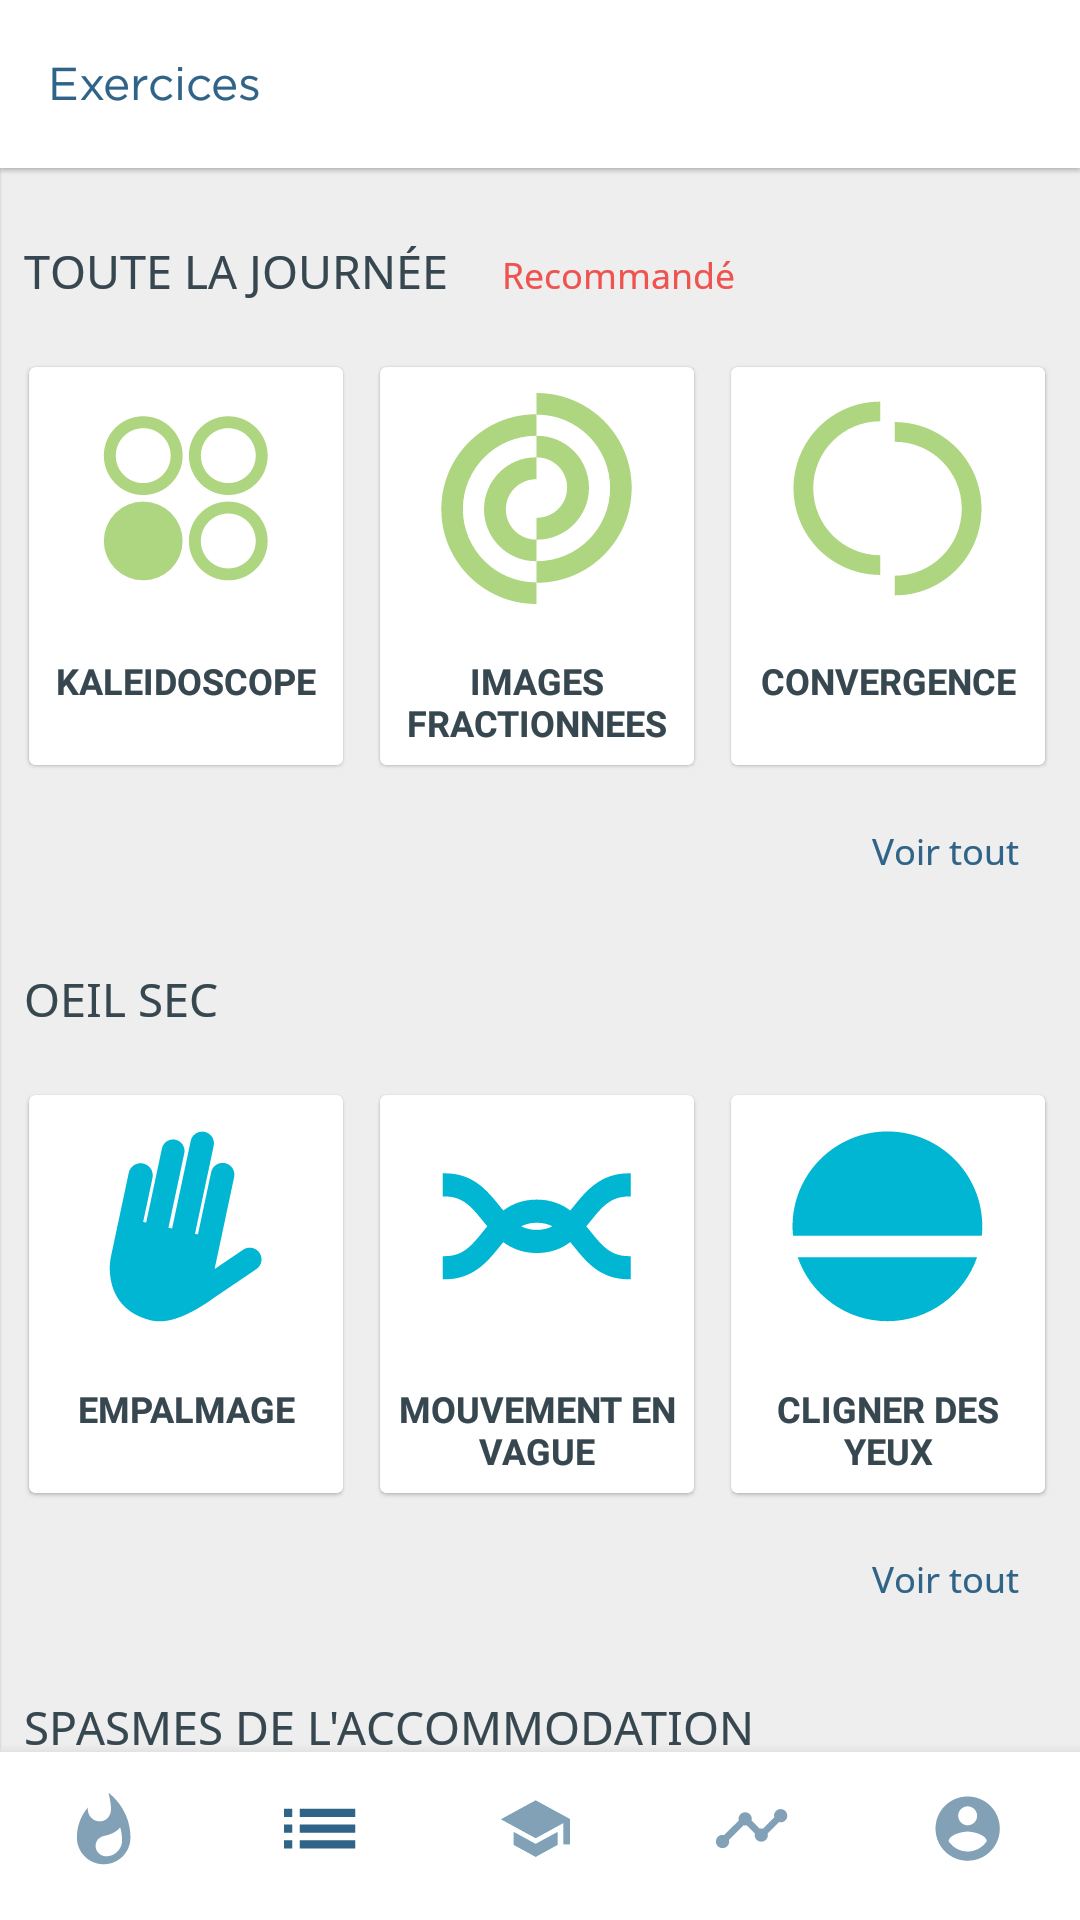 EyeCarePlus - Exercices 1